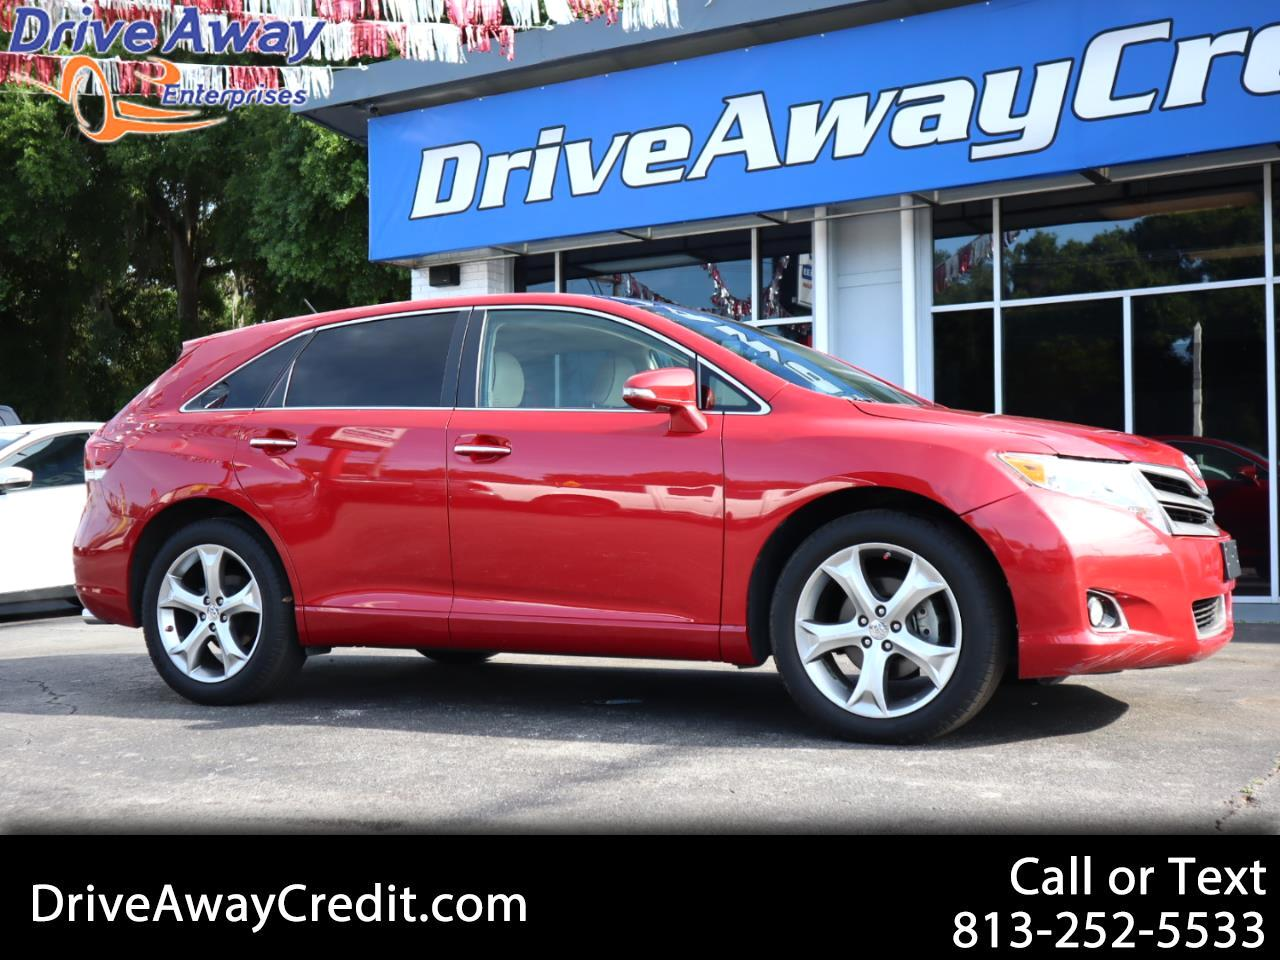 2014 Toyota Venza 4dr Wgn V6 FWD XLE (Natl)